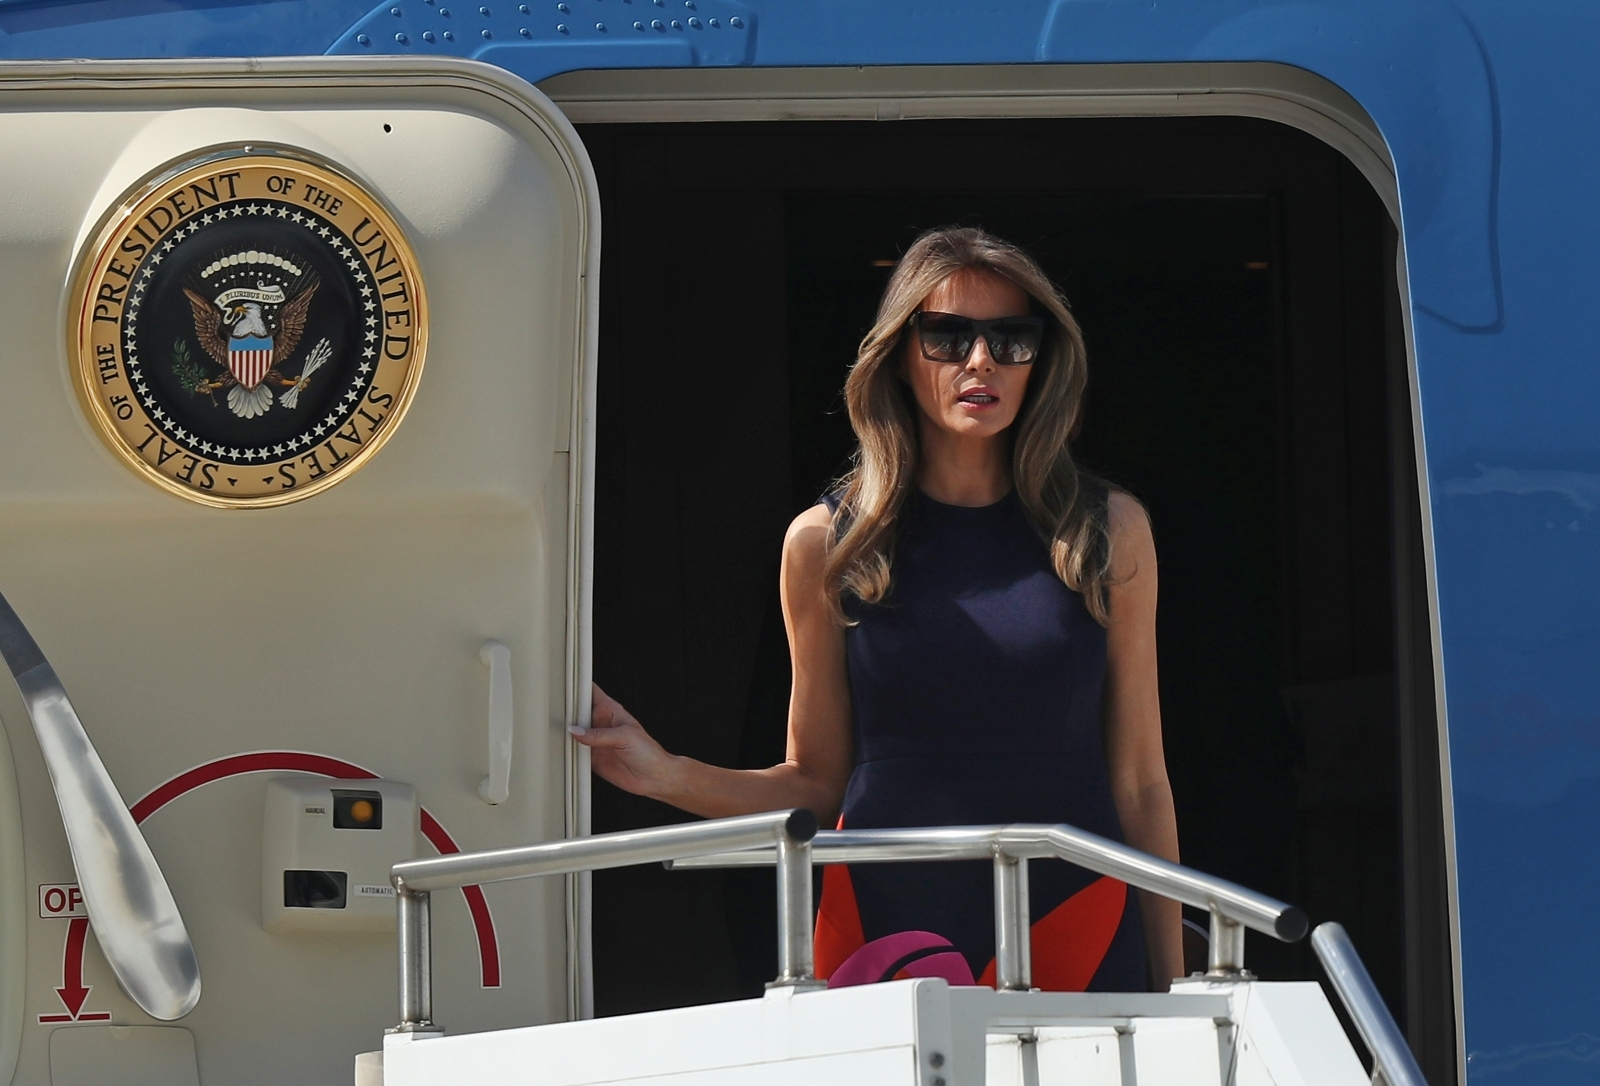 Melania Trump Reportedly 'Blindsided' and Furious Over Reports of Stormy Daniels Payoff